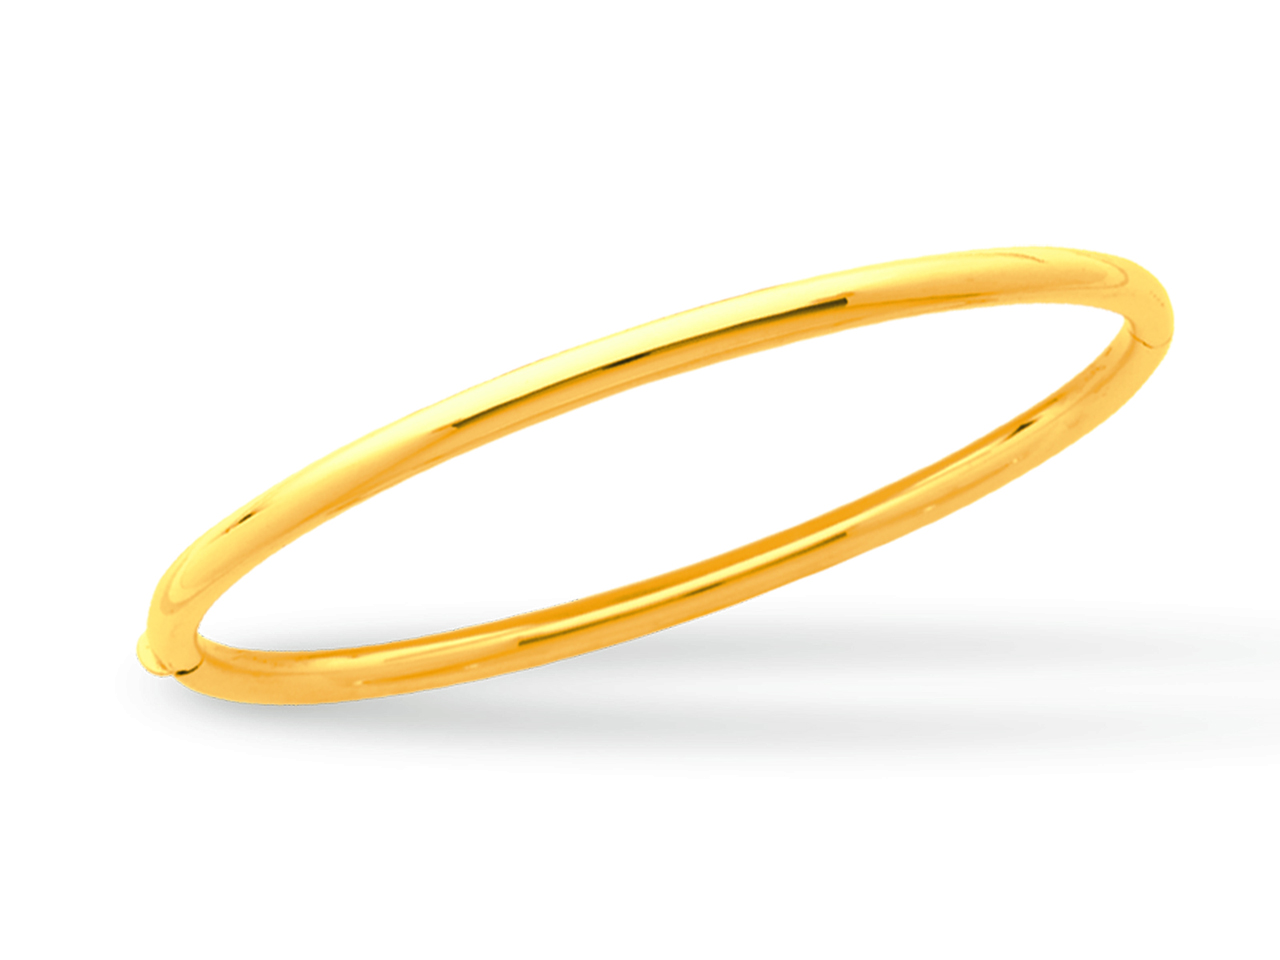 Jonc ouvrant, Or jaune 18k, fil rond 3 mm, forme Ovale. Diam 63 mm